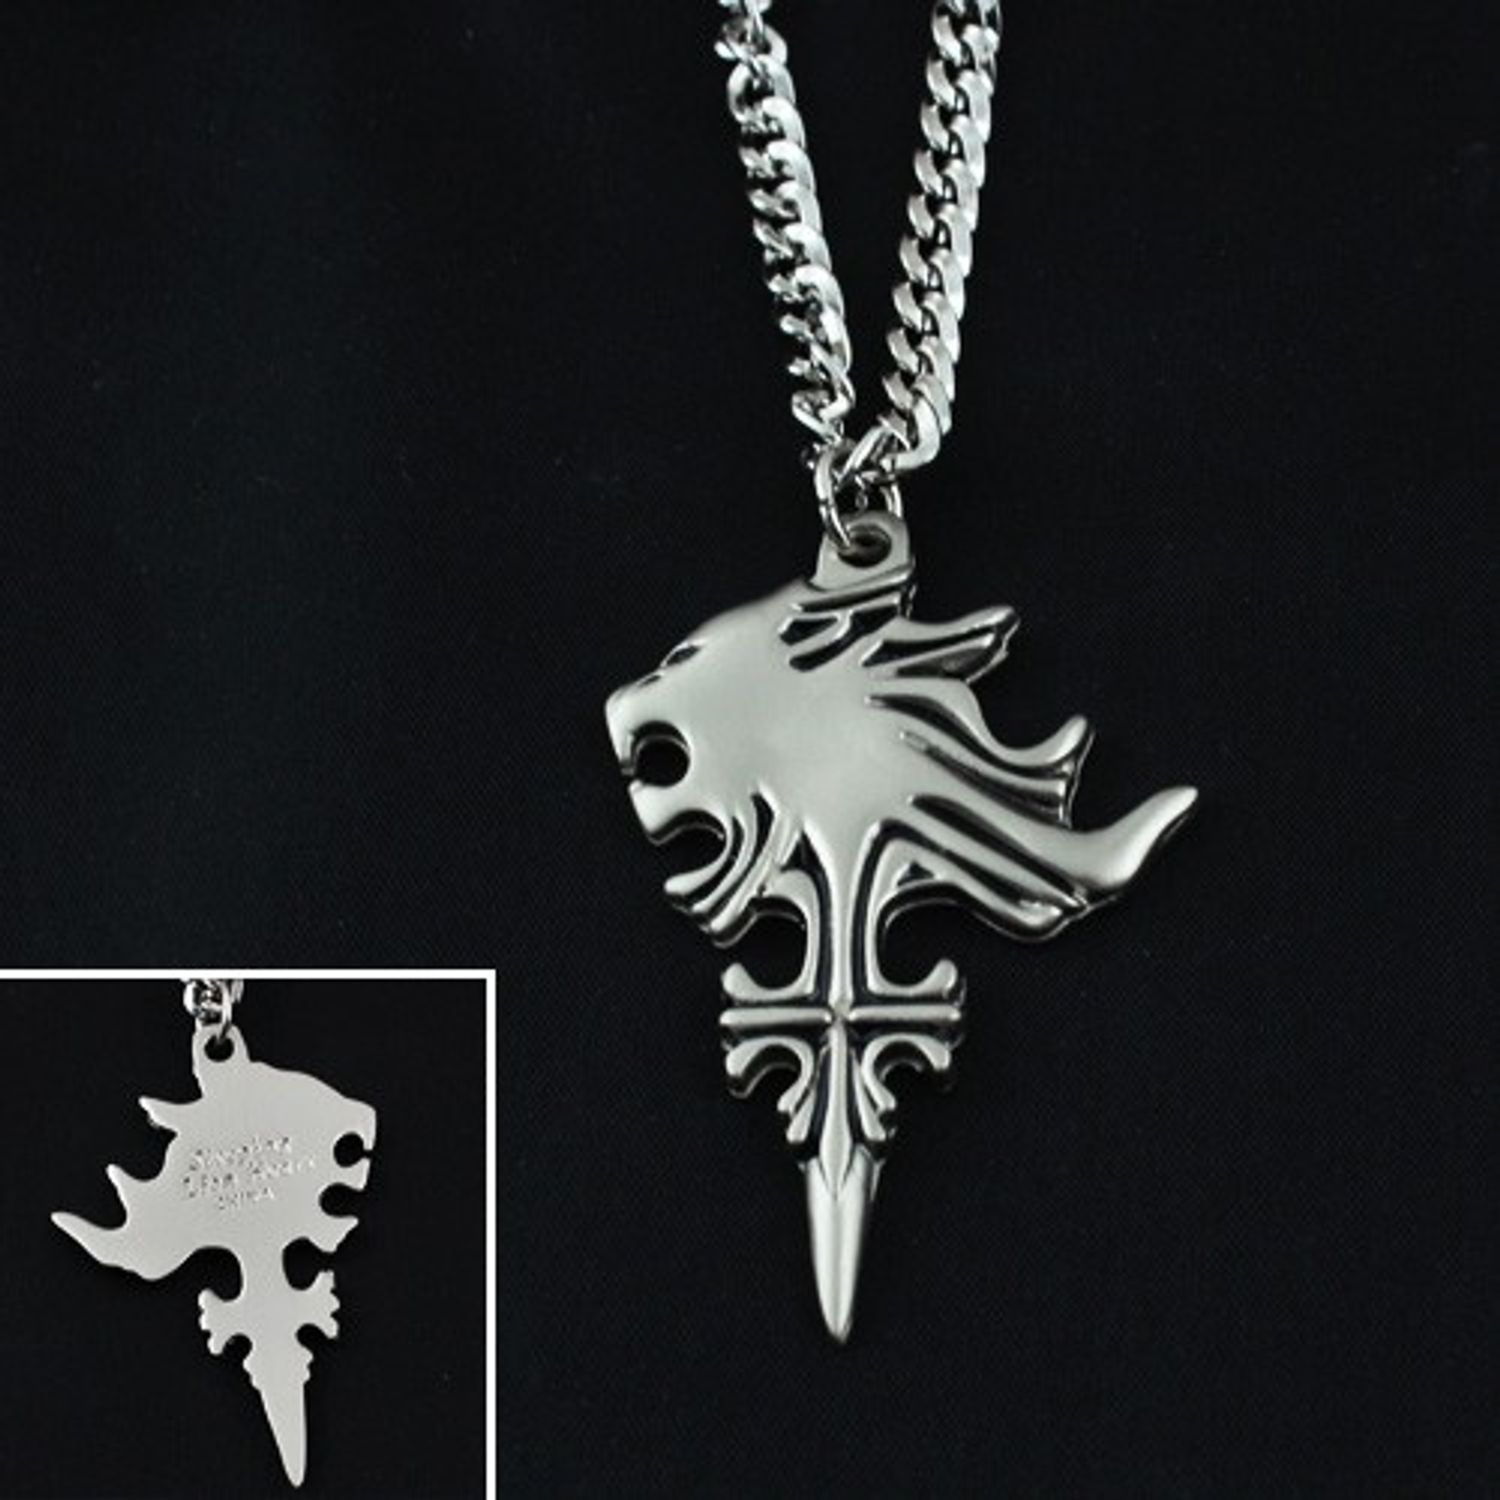 Final fantasy viii ff8 sleeping lion head pendant necklace fft0004 zoom mozeypictures Choice Image